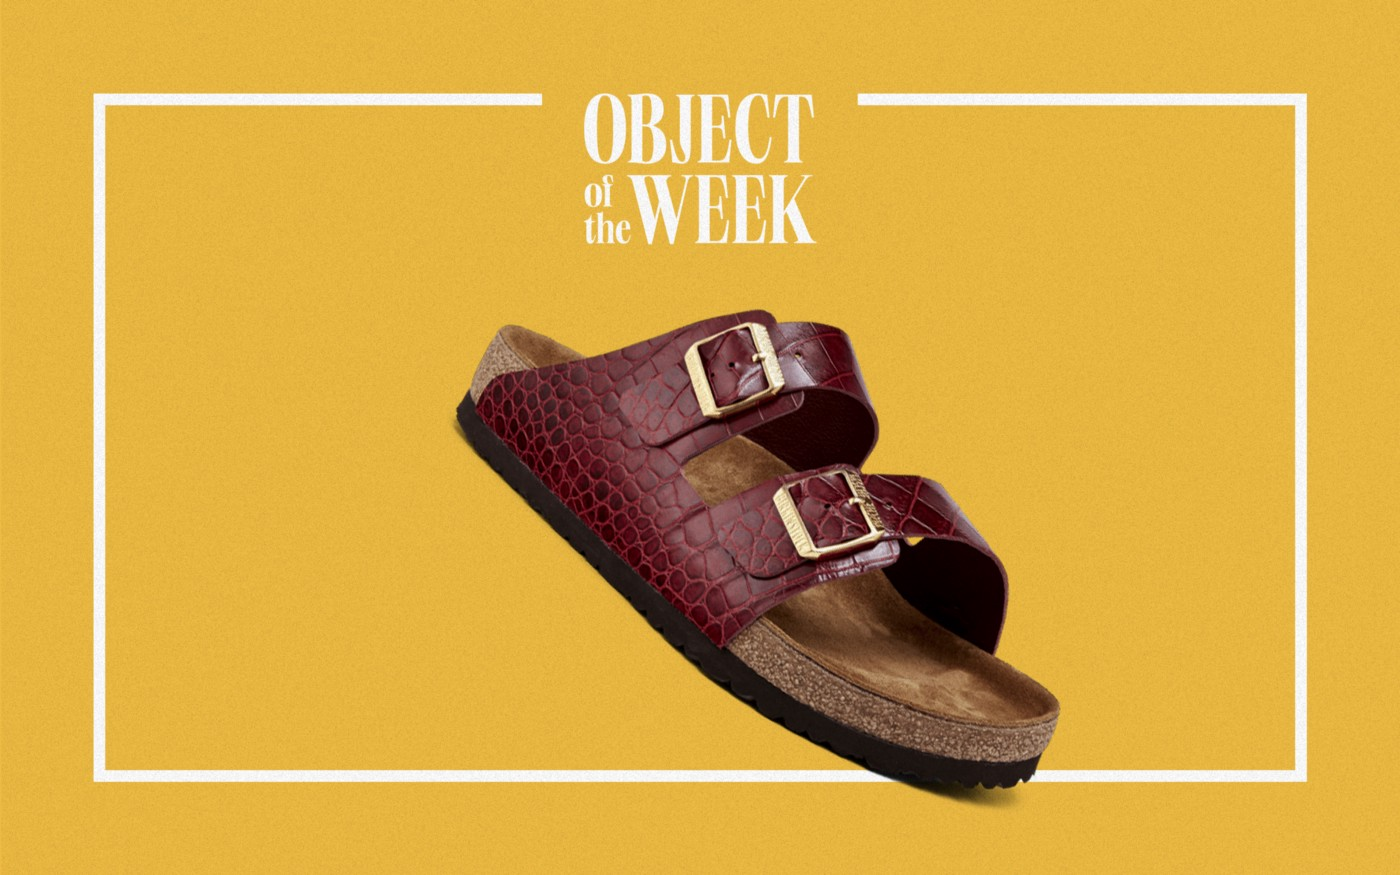 "A Birkinstock sandal, with the straps made of recycled Birkin bags, below the text ""Object of the Week""."